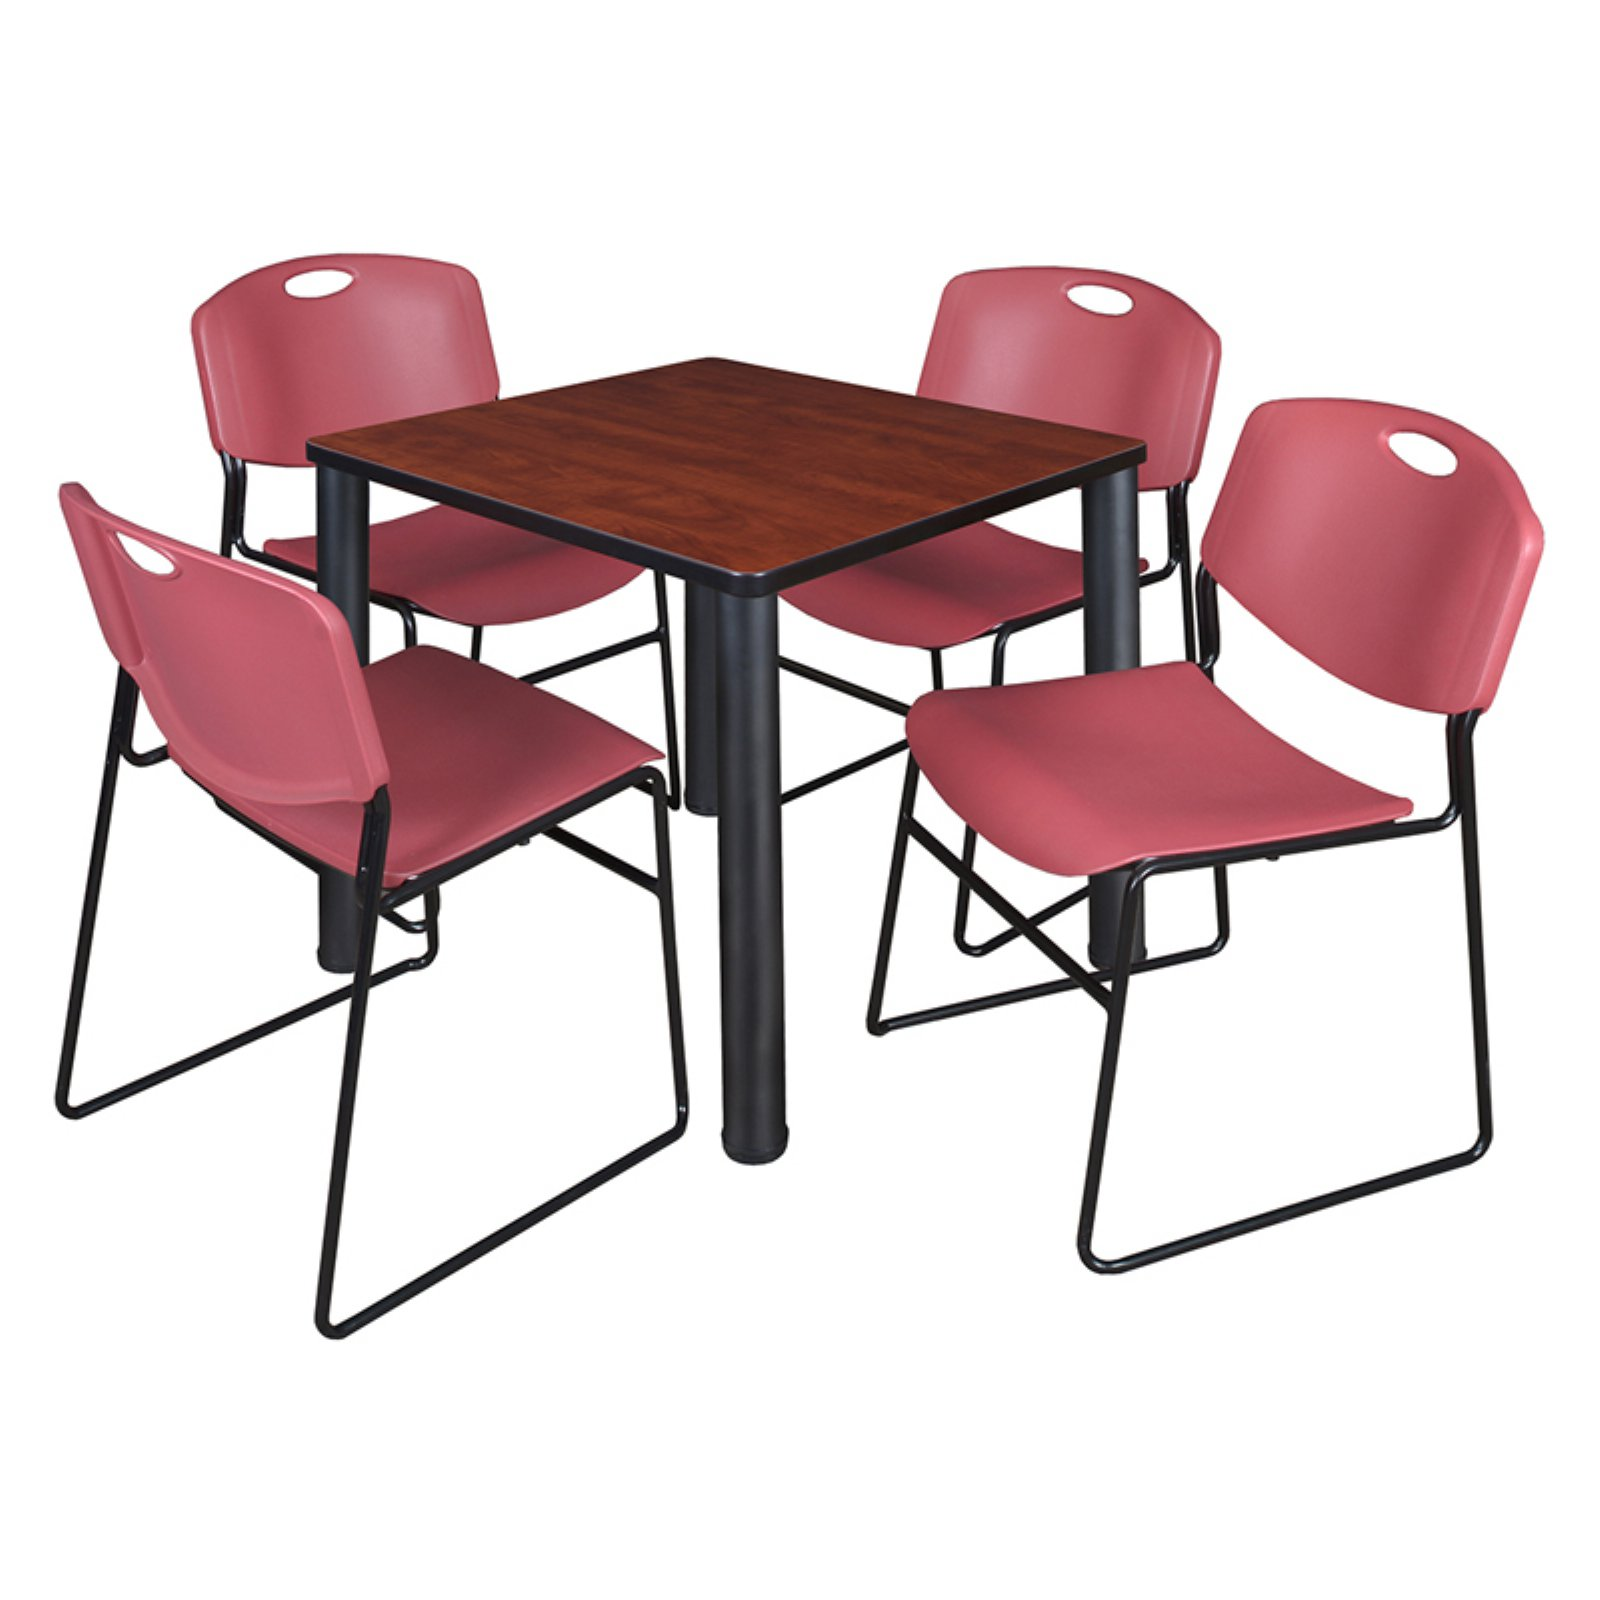 "Kee 36"" Square Breakroom Table- Cherry/ Chrome & 4 Zeng Stack Chairs- Blue"